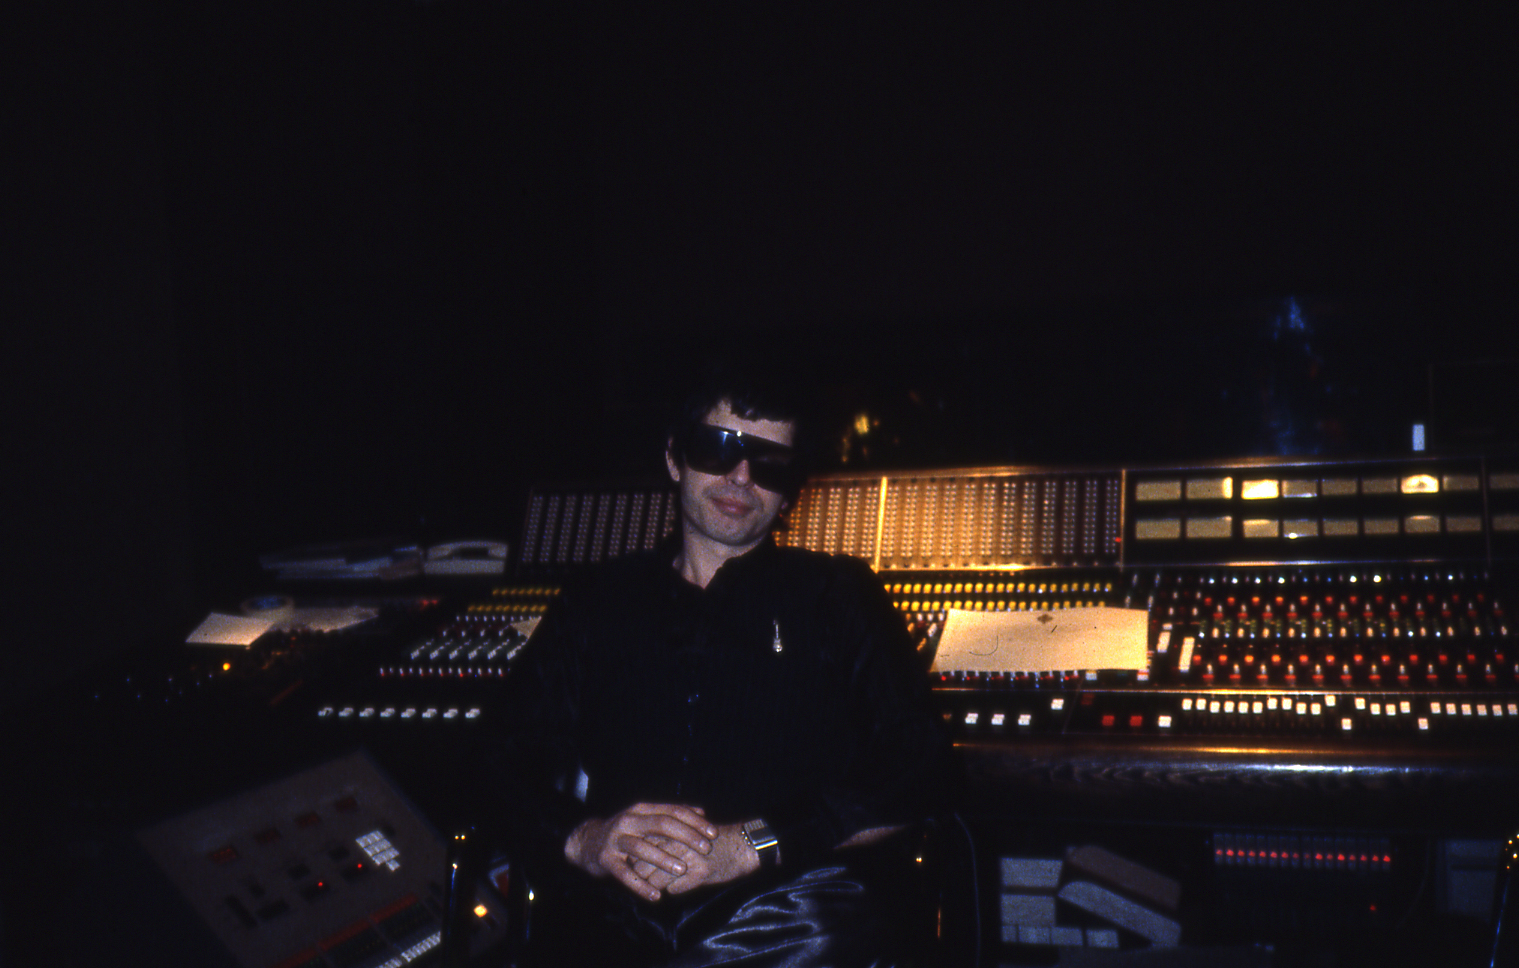 Tony Visconti in his Good Earth Recording Studios, with Trident TSM console, London, early 1980s